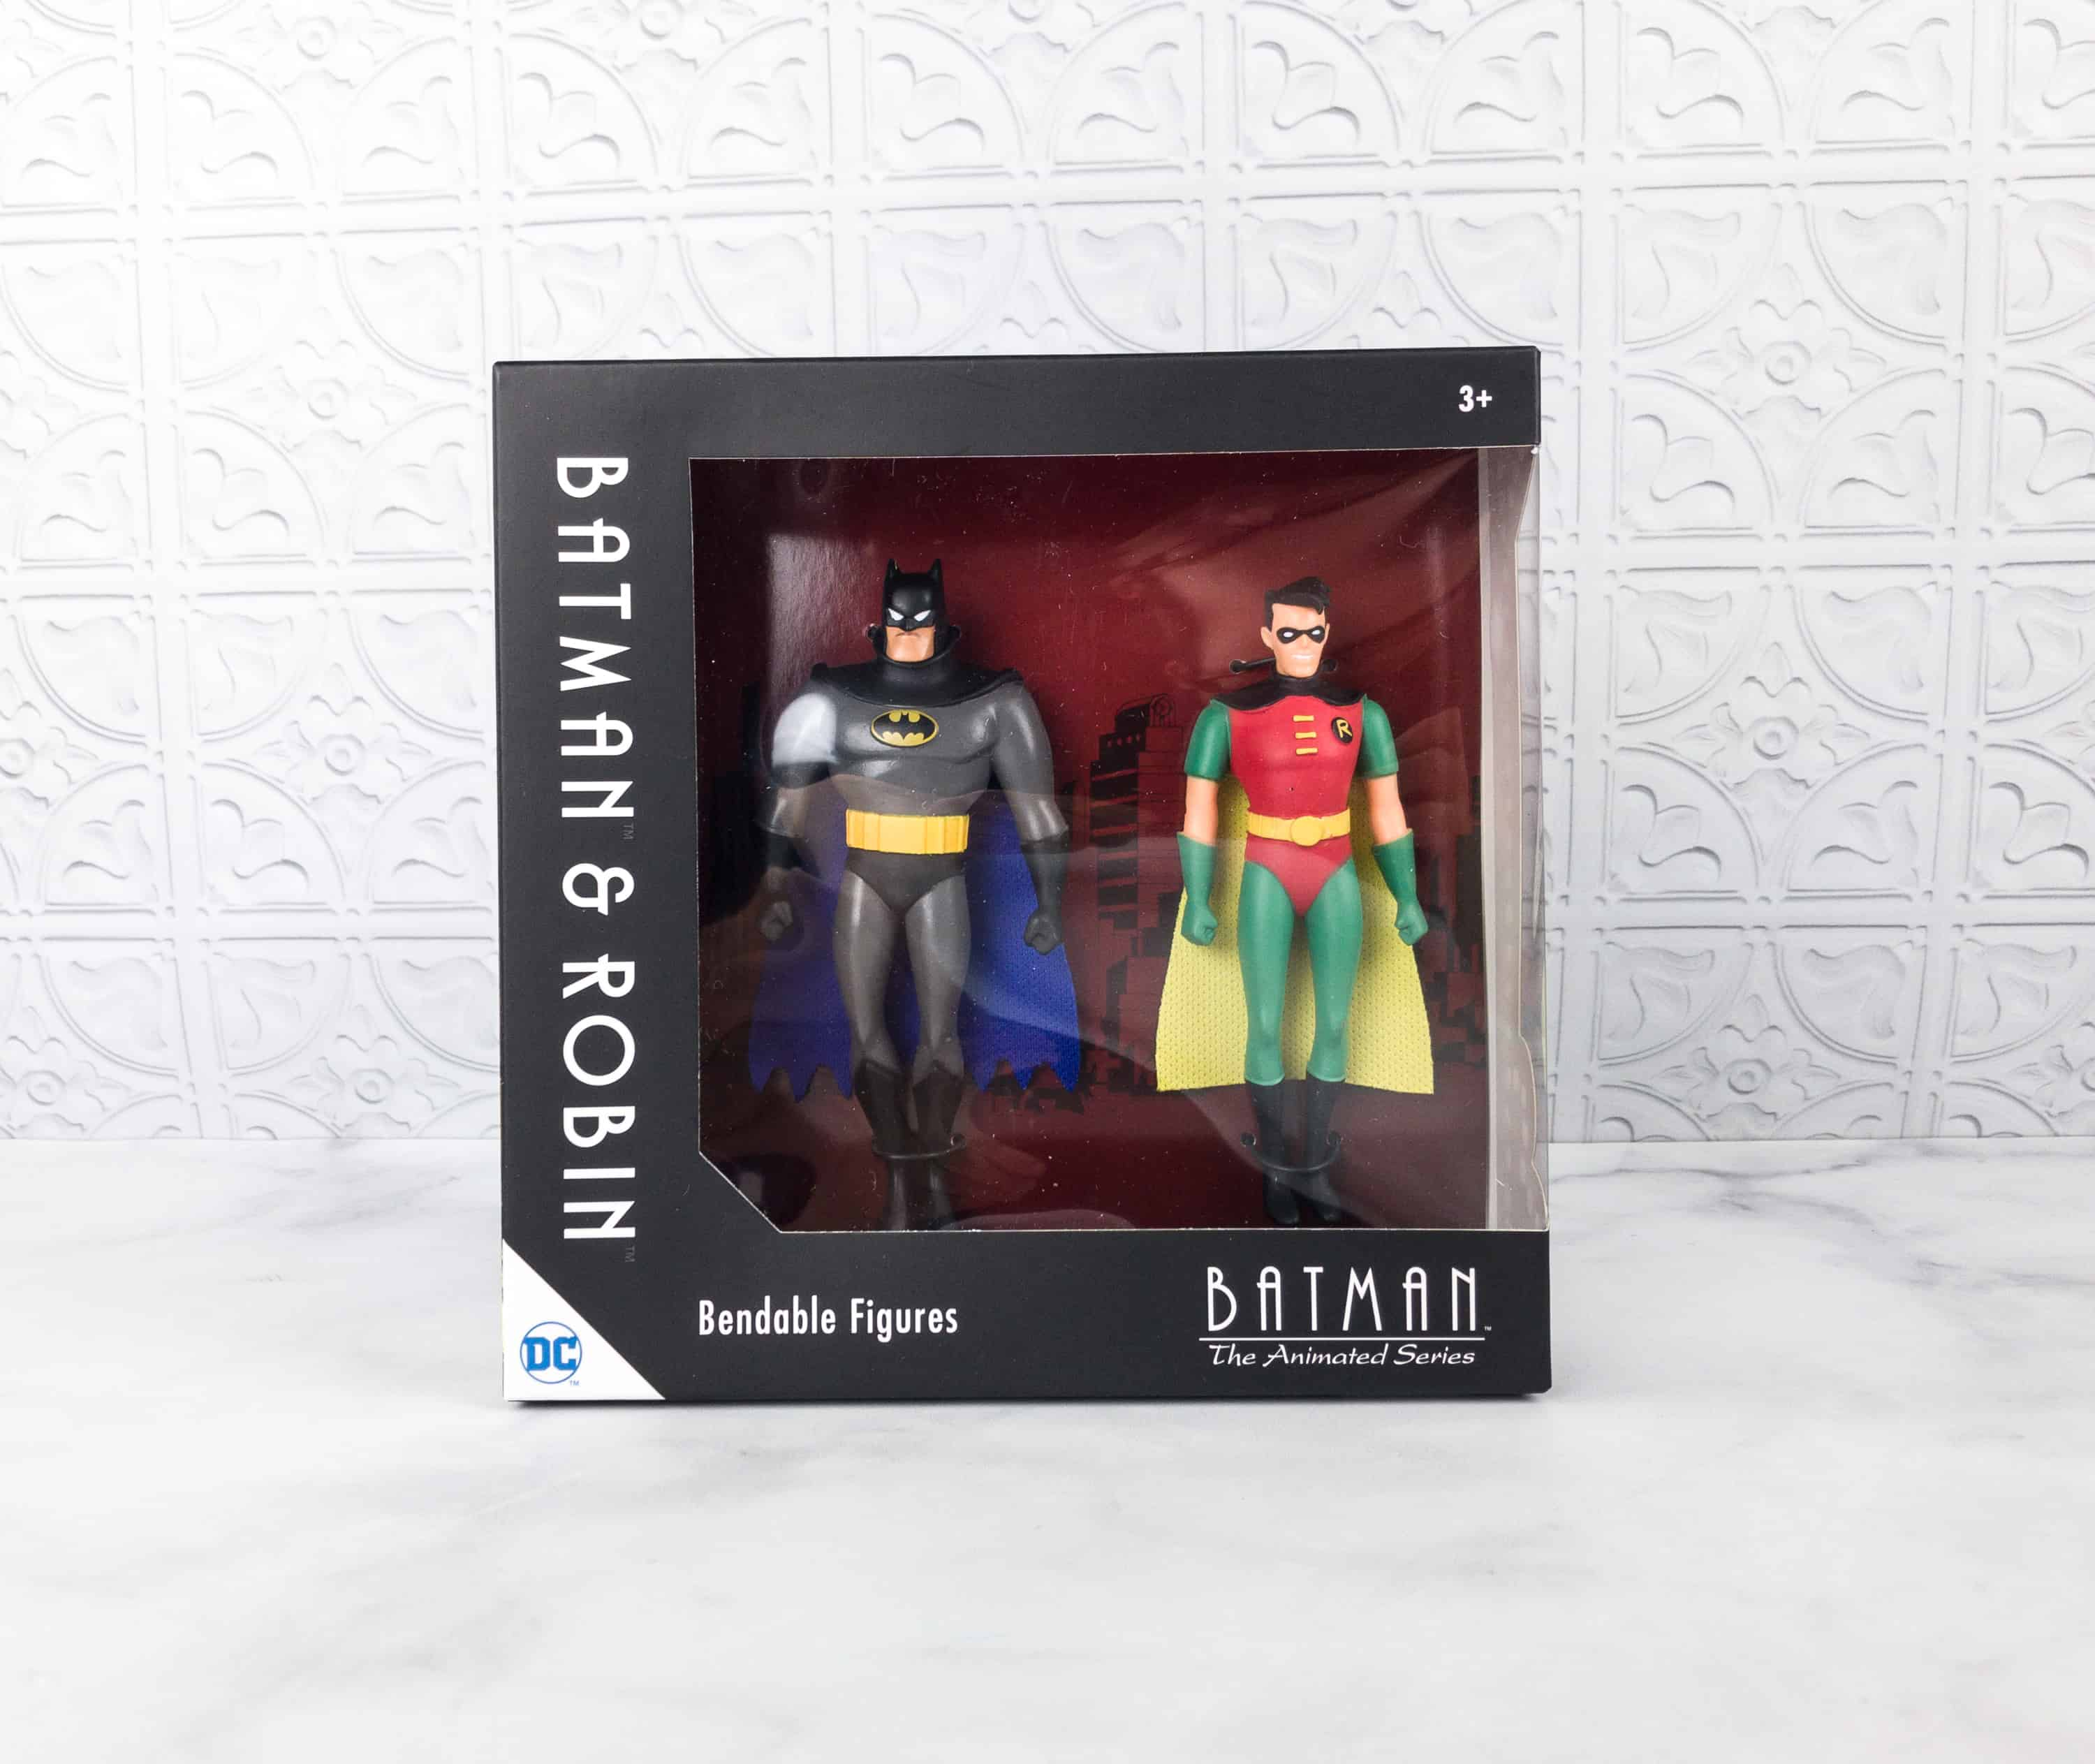 Loot crate dx march 2018 subscription box review coupon hello batman robin bendable figures we got the most popular dynamic duo in super hero history batman and robin as bendable figures fandeluxe Image collections